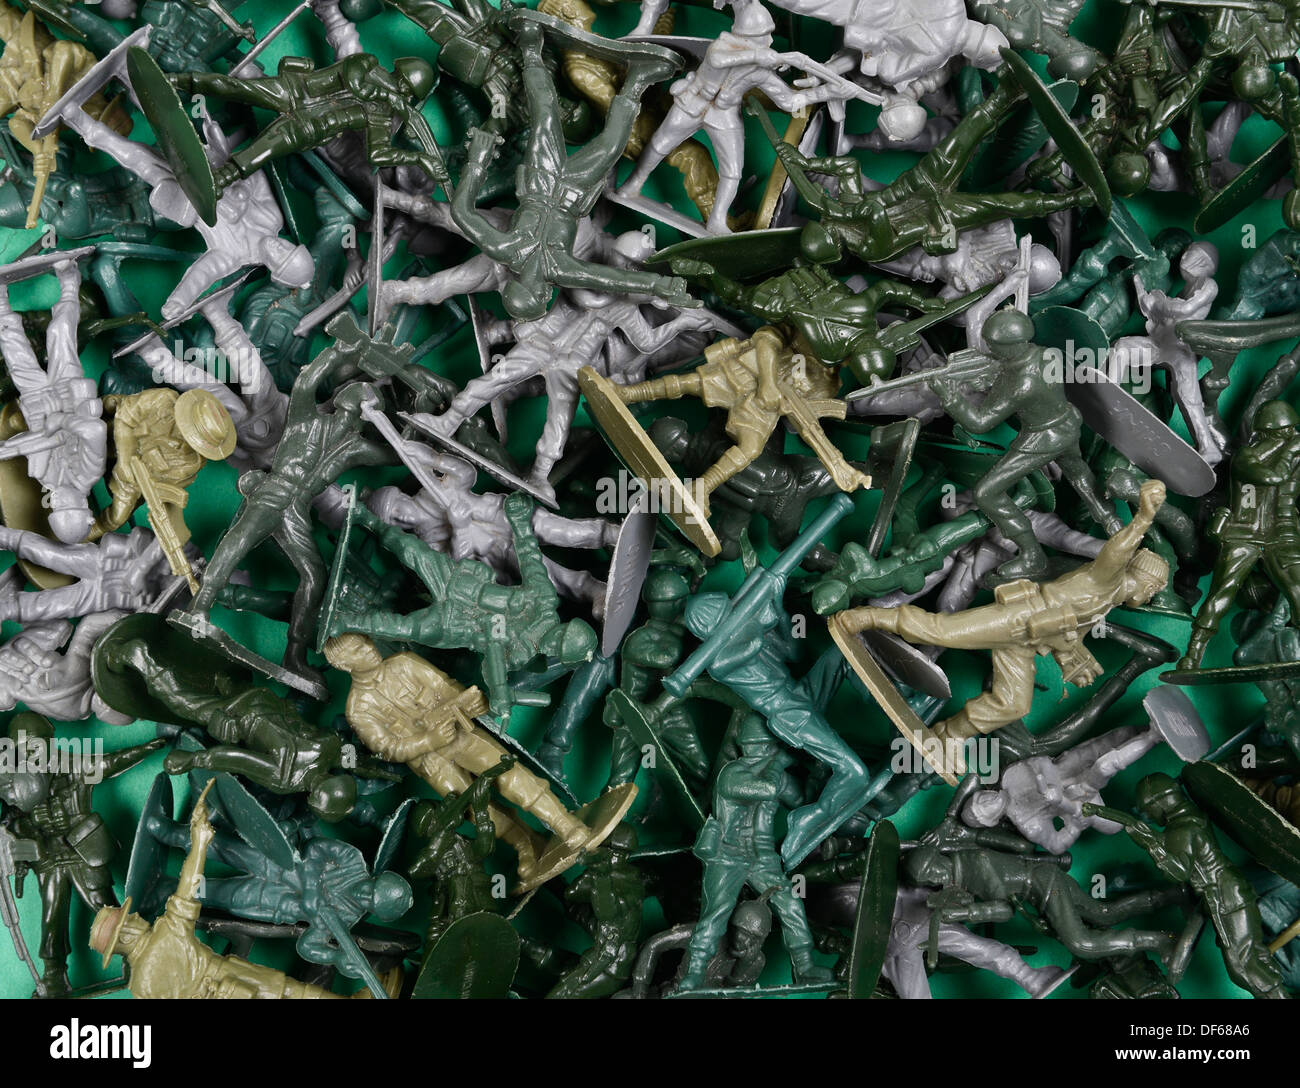 Jumble of green plastic toy soldiers - Stock Image